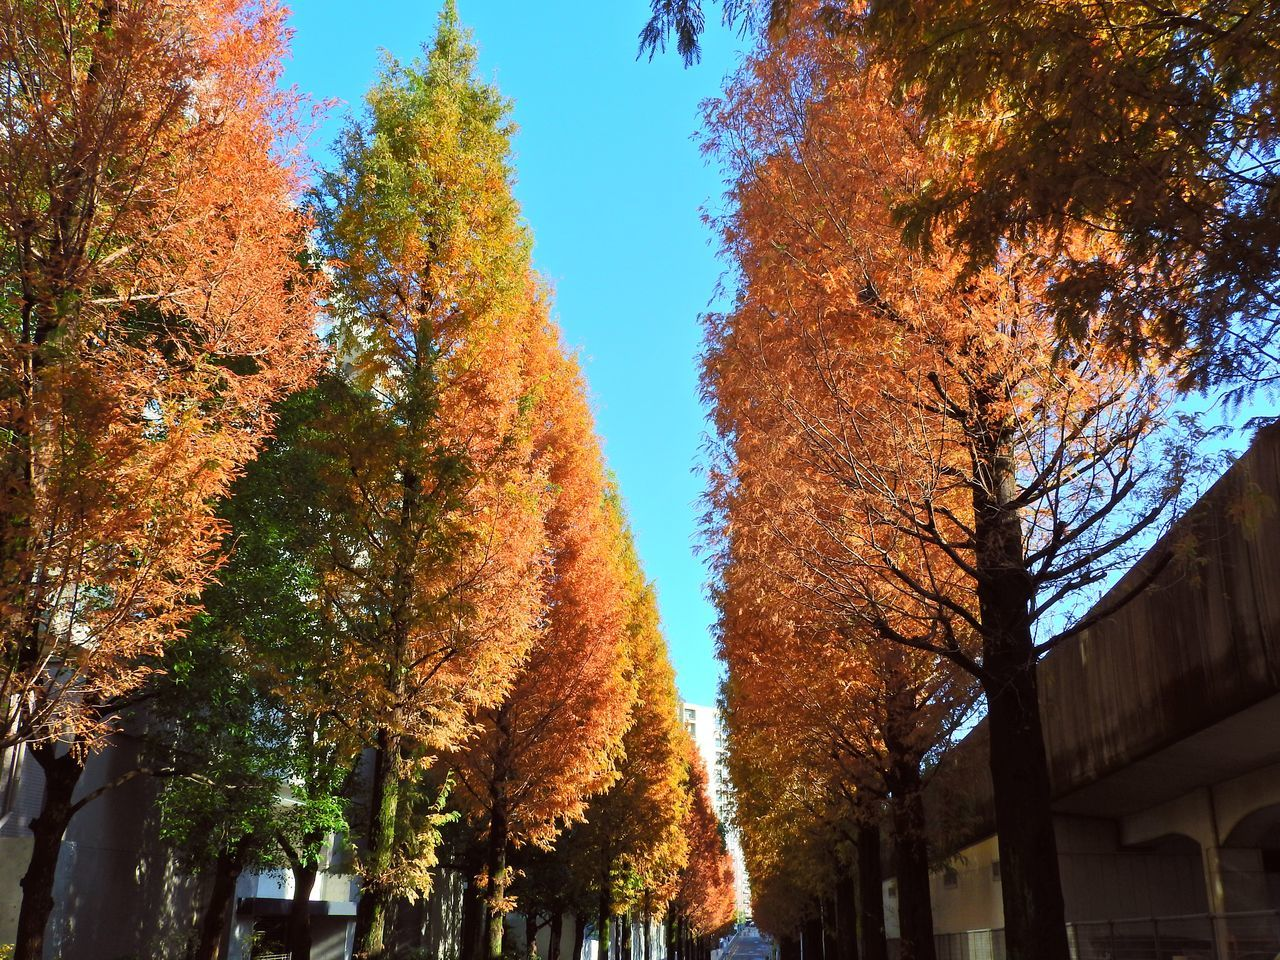 Colonnade of Trees Beauty In Nature Day Growth Low Angle View Multi Colored Nature No People Outdoors Sky Tree